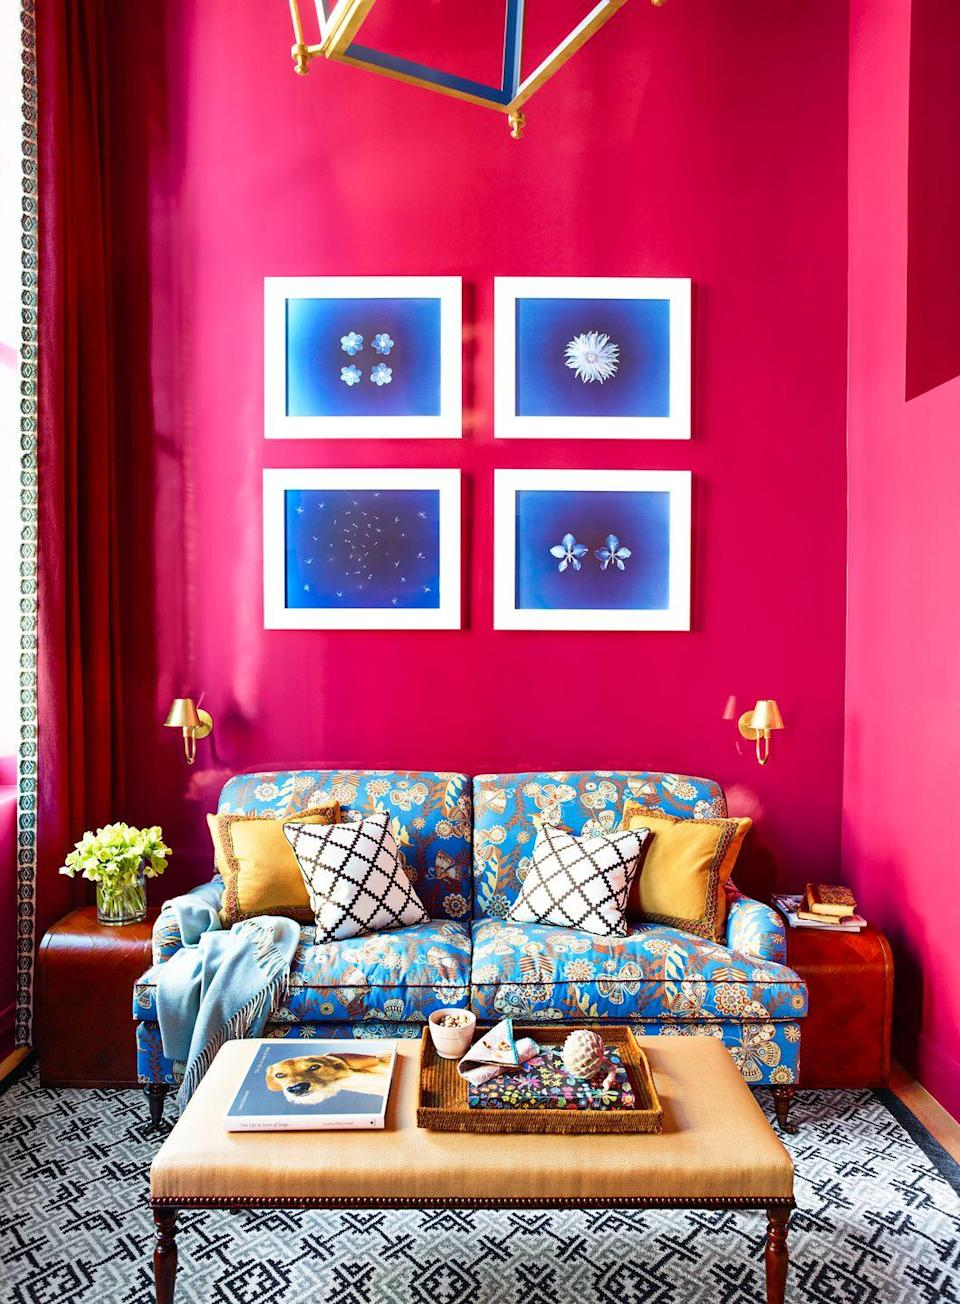 """<p>Intense, eye-catching, and adventurous, the neon pink walls in this Greenwich Village living room designed by <a href=""""https://www.katieridder.com/"""" rel=""""nofollow noopener"""" target=""""_blank"""" data-ylk=""""slk:Katie Ridder"""" class=""""link rapid-noclick-resp"""">Katie Ridder</a> (she used <a href=""""https://c2paint.com/products/mulberry-c2-507"""" rel=""""nofollow noopener"""" target=""""_blank"""" data-ylk=""""slk:C2 Paints' Mulberry"""" class=""""link rapid-noclick-resp"""">C2 Paints' Mulberry</a>) are a bold choice that paid off. Contrasting sky blue tones and traditional furniture make it more transitional and timeless than quirky. Use the shade in a foyer for a warm, welcoming, impossible-to-forget entrance.</p>"""